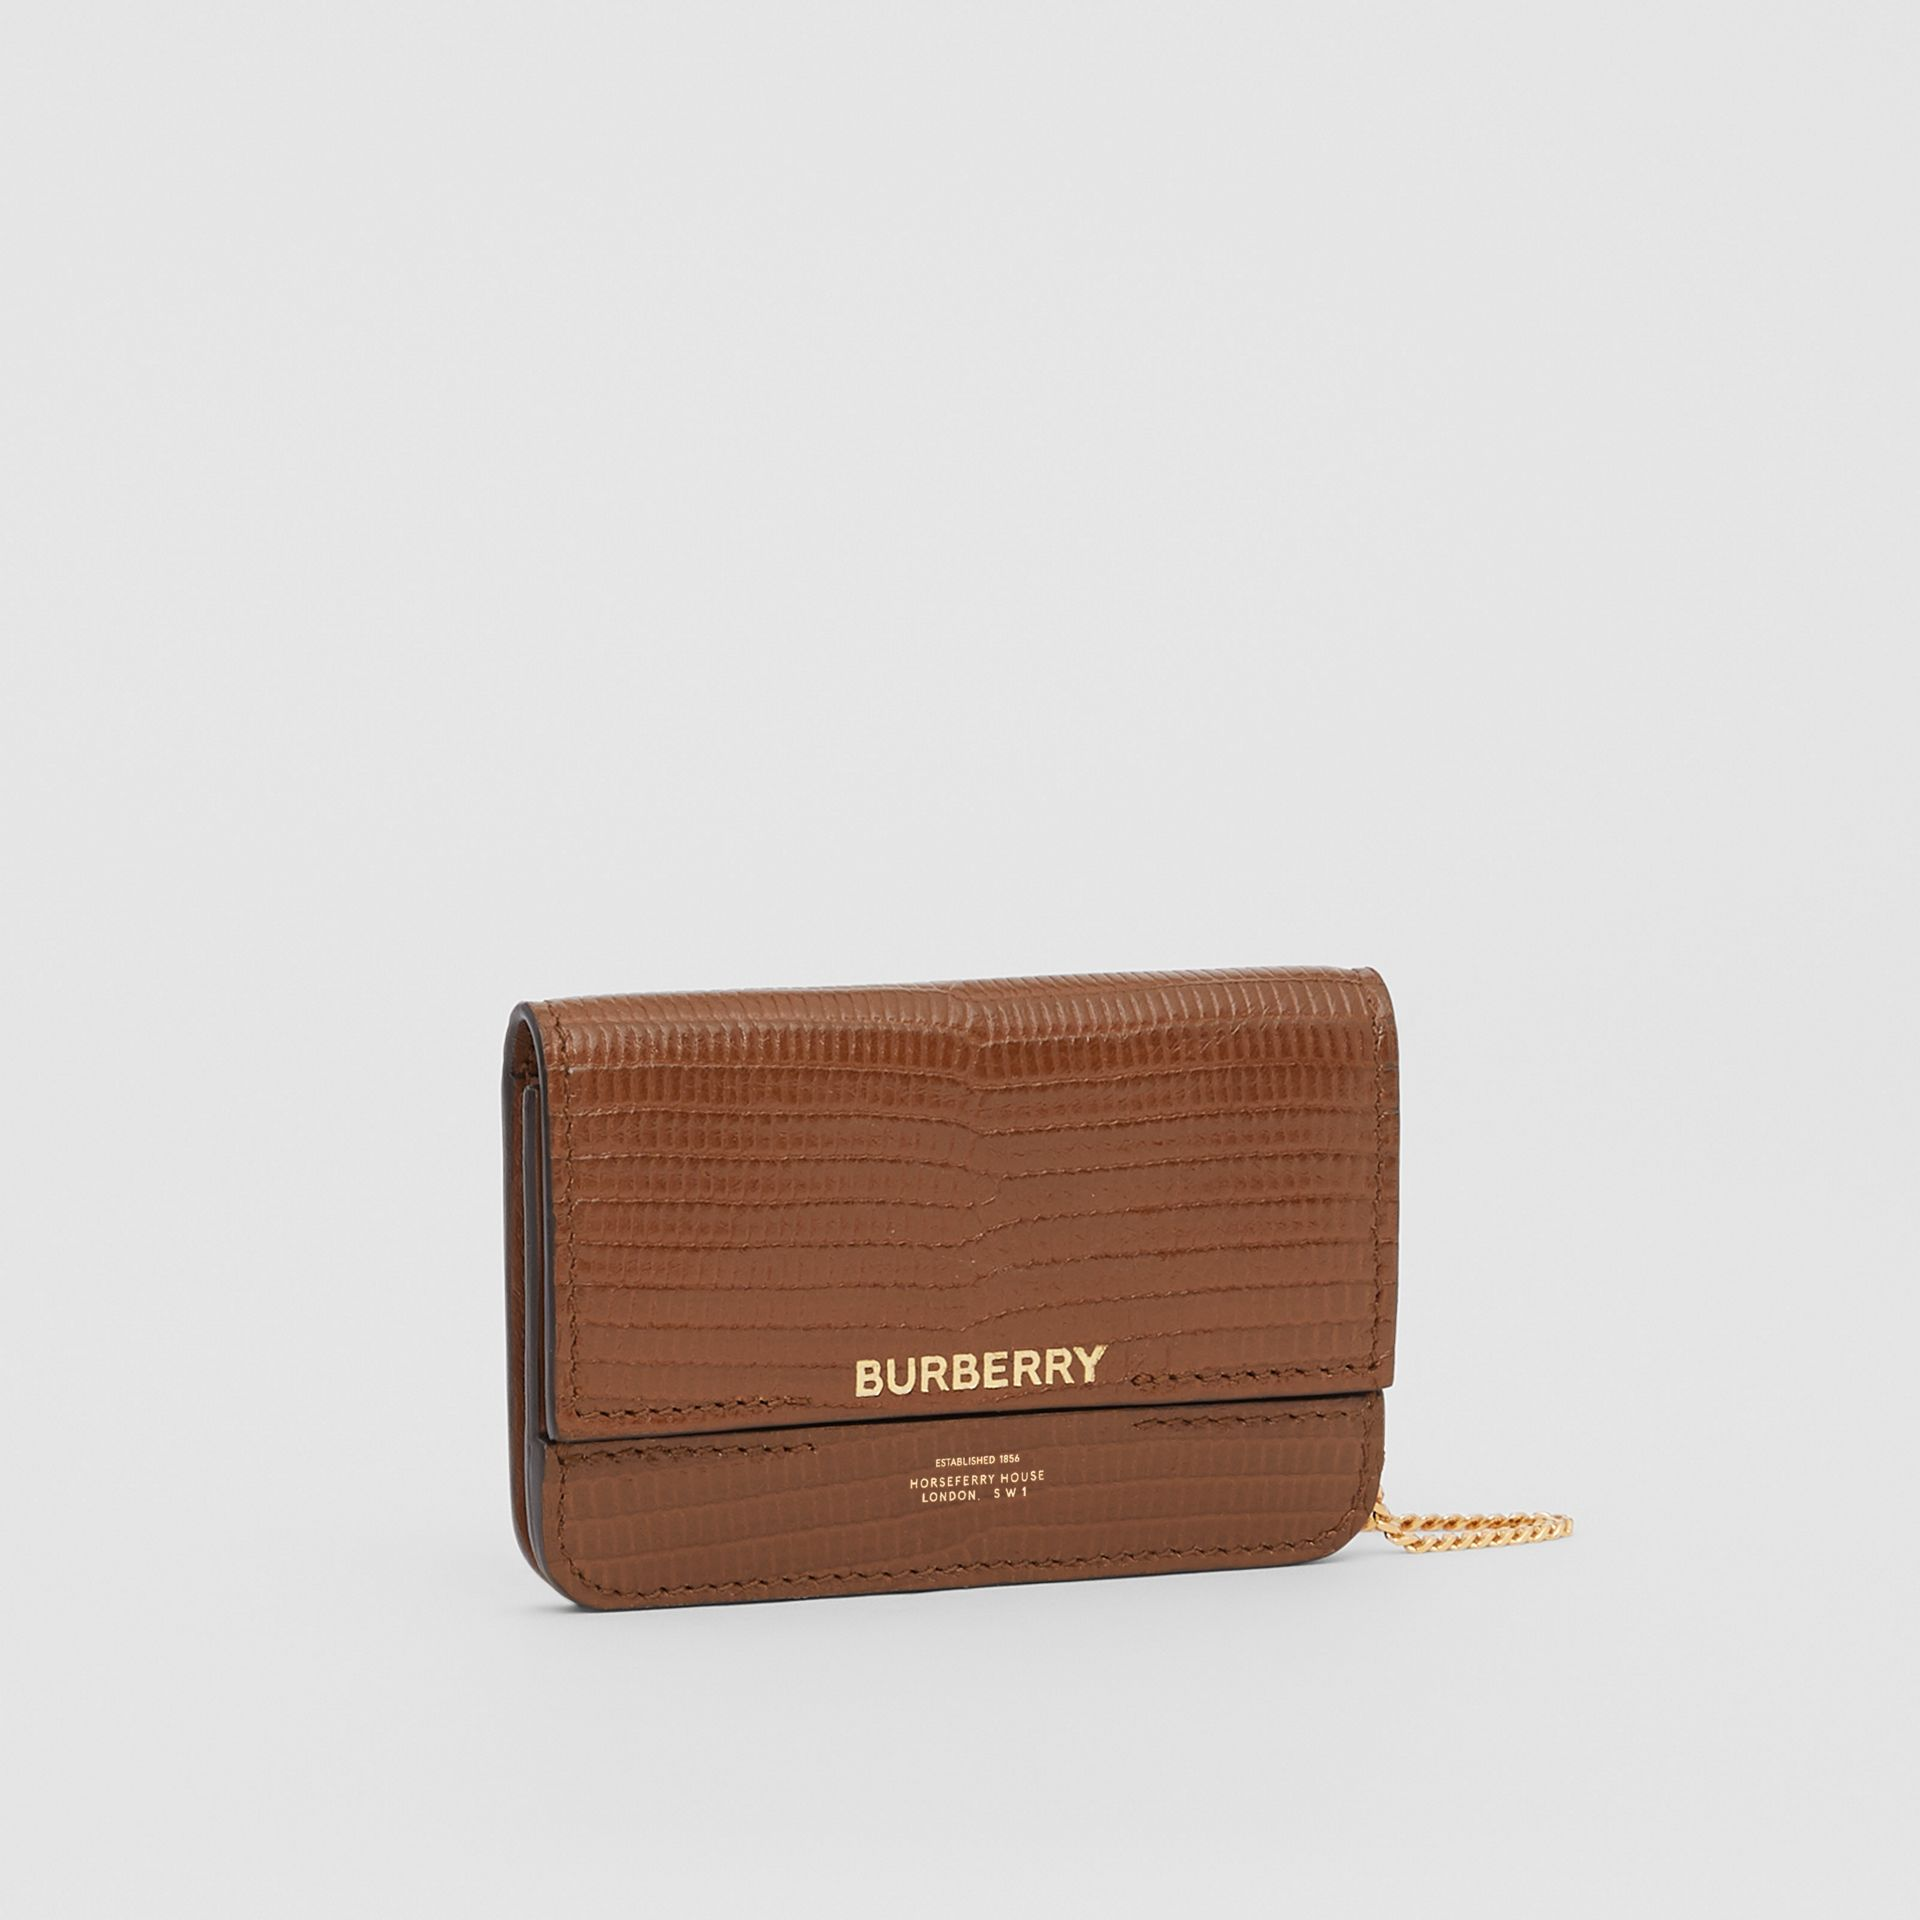 Embossed Deerskin Card Case with Chain Strap in Tan - Women | Burberry Canada - gallery image 7